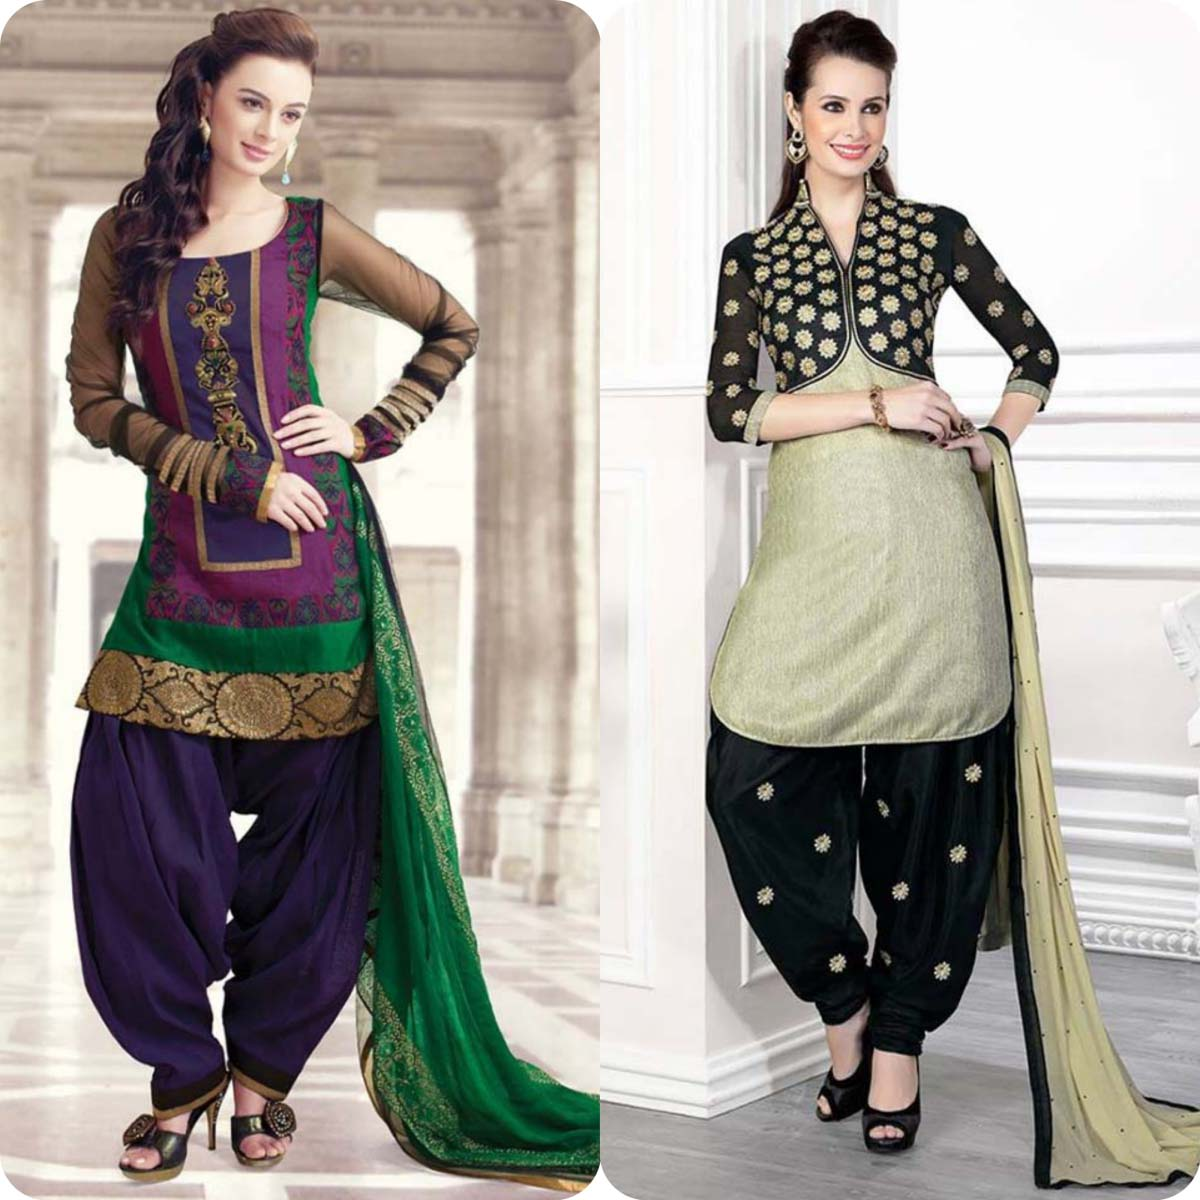 Latest Pakistani and Indian Patiala Shalwar Kameez Suits Designs (13)